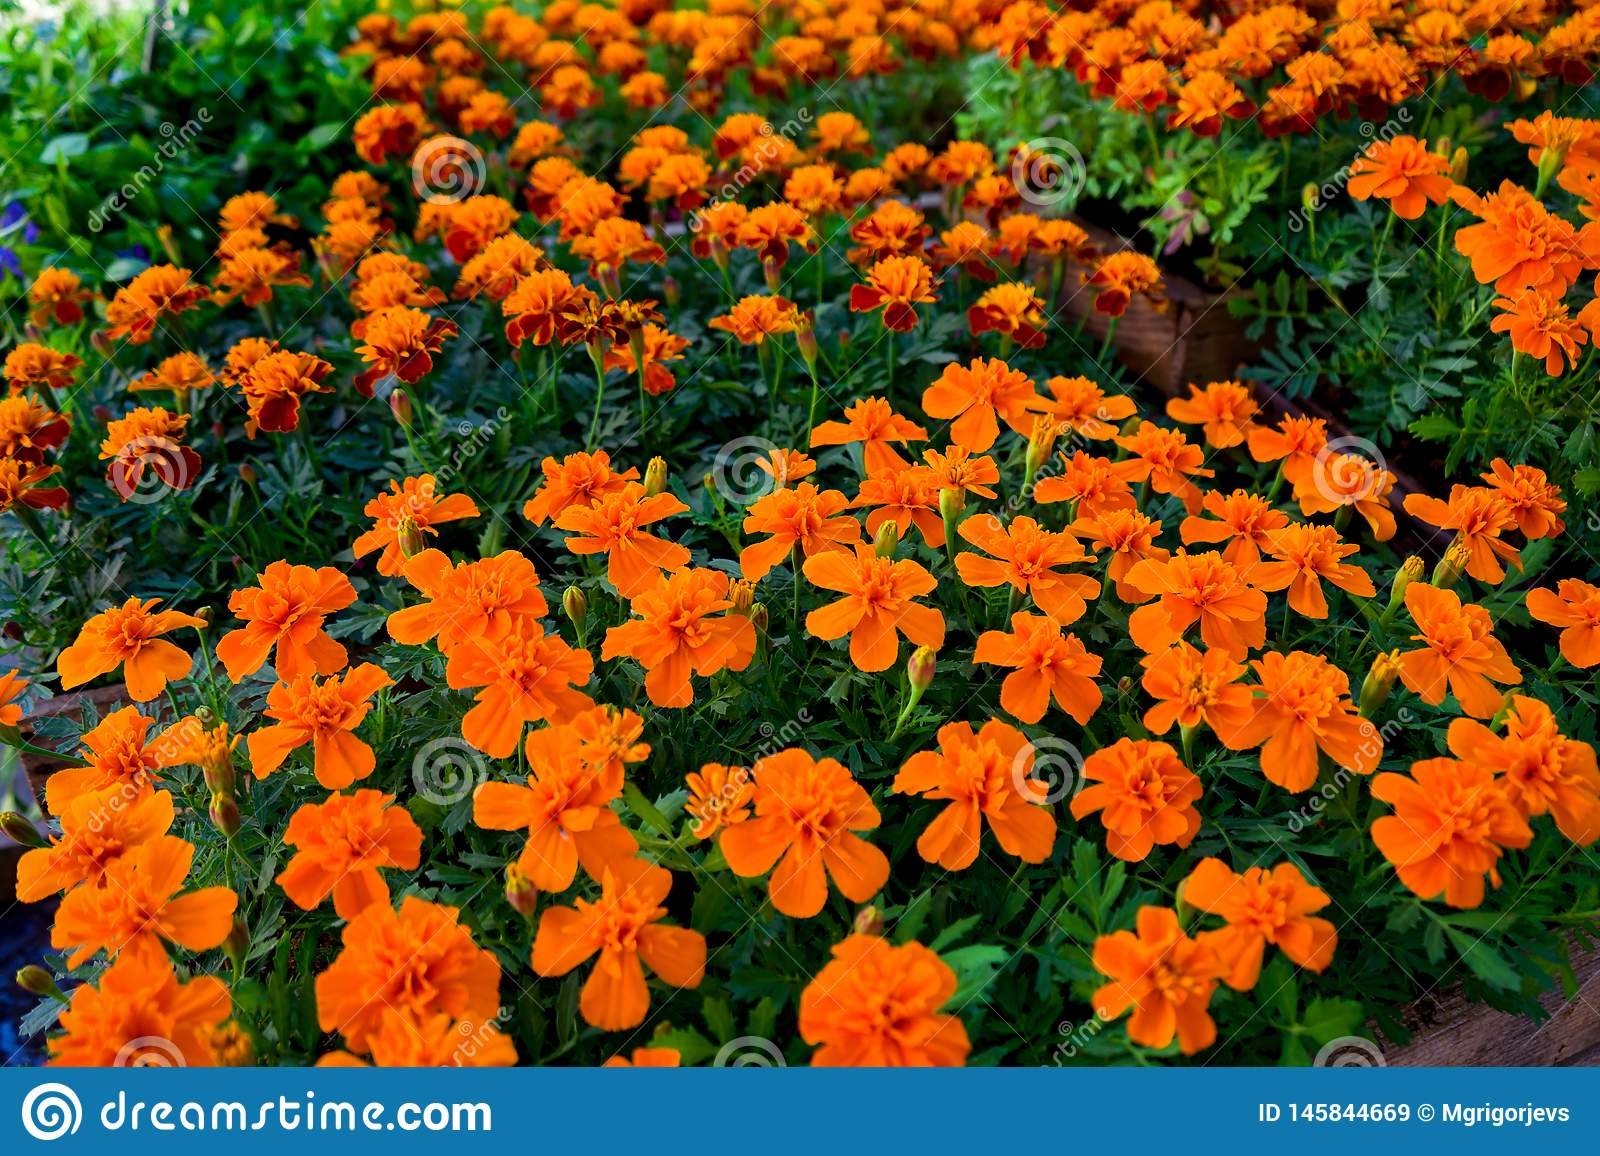 Marigold yellow and orange flowers in pots for sale on garden market display.